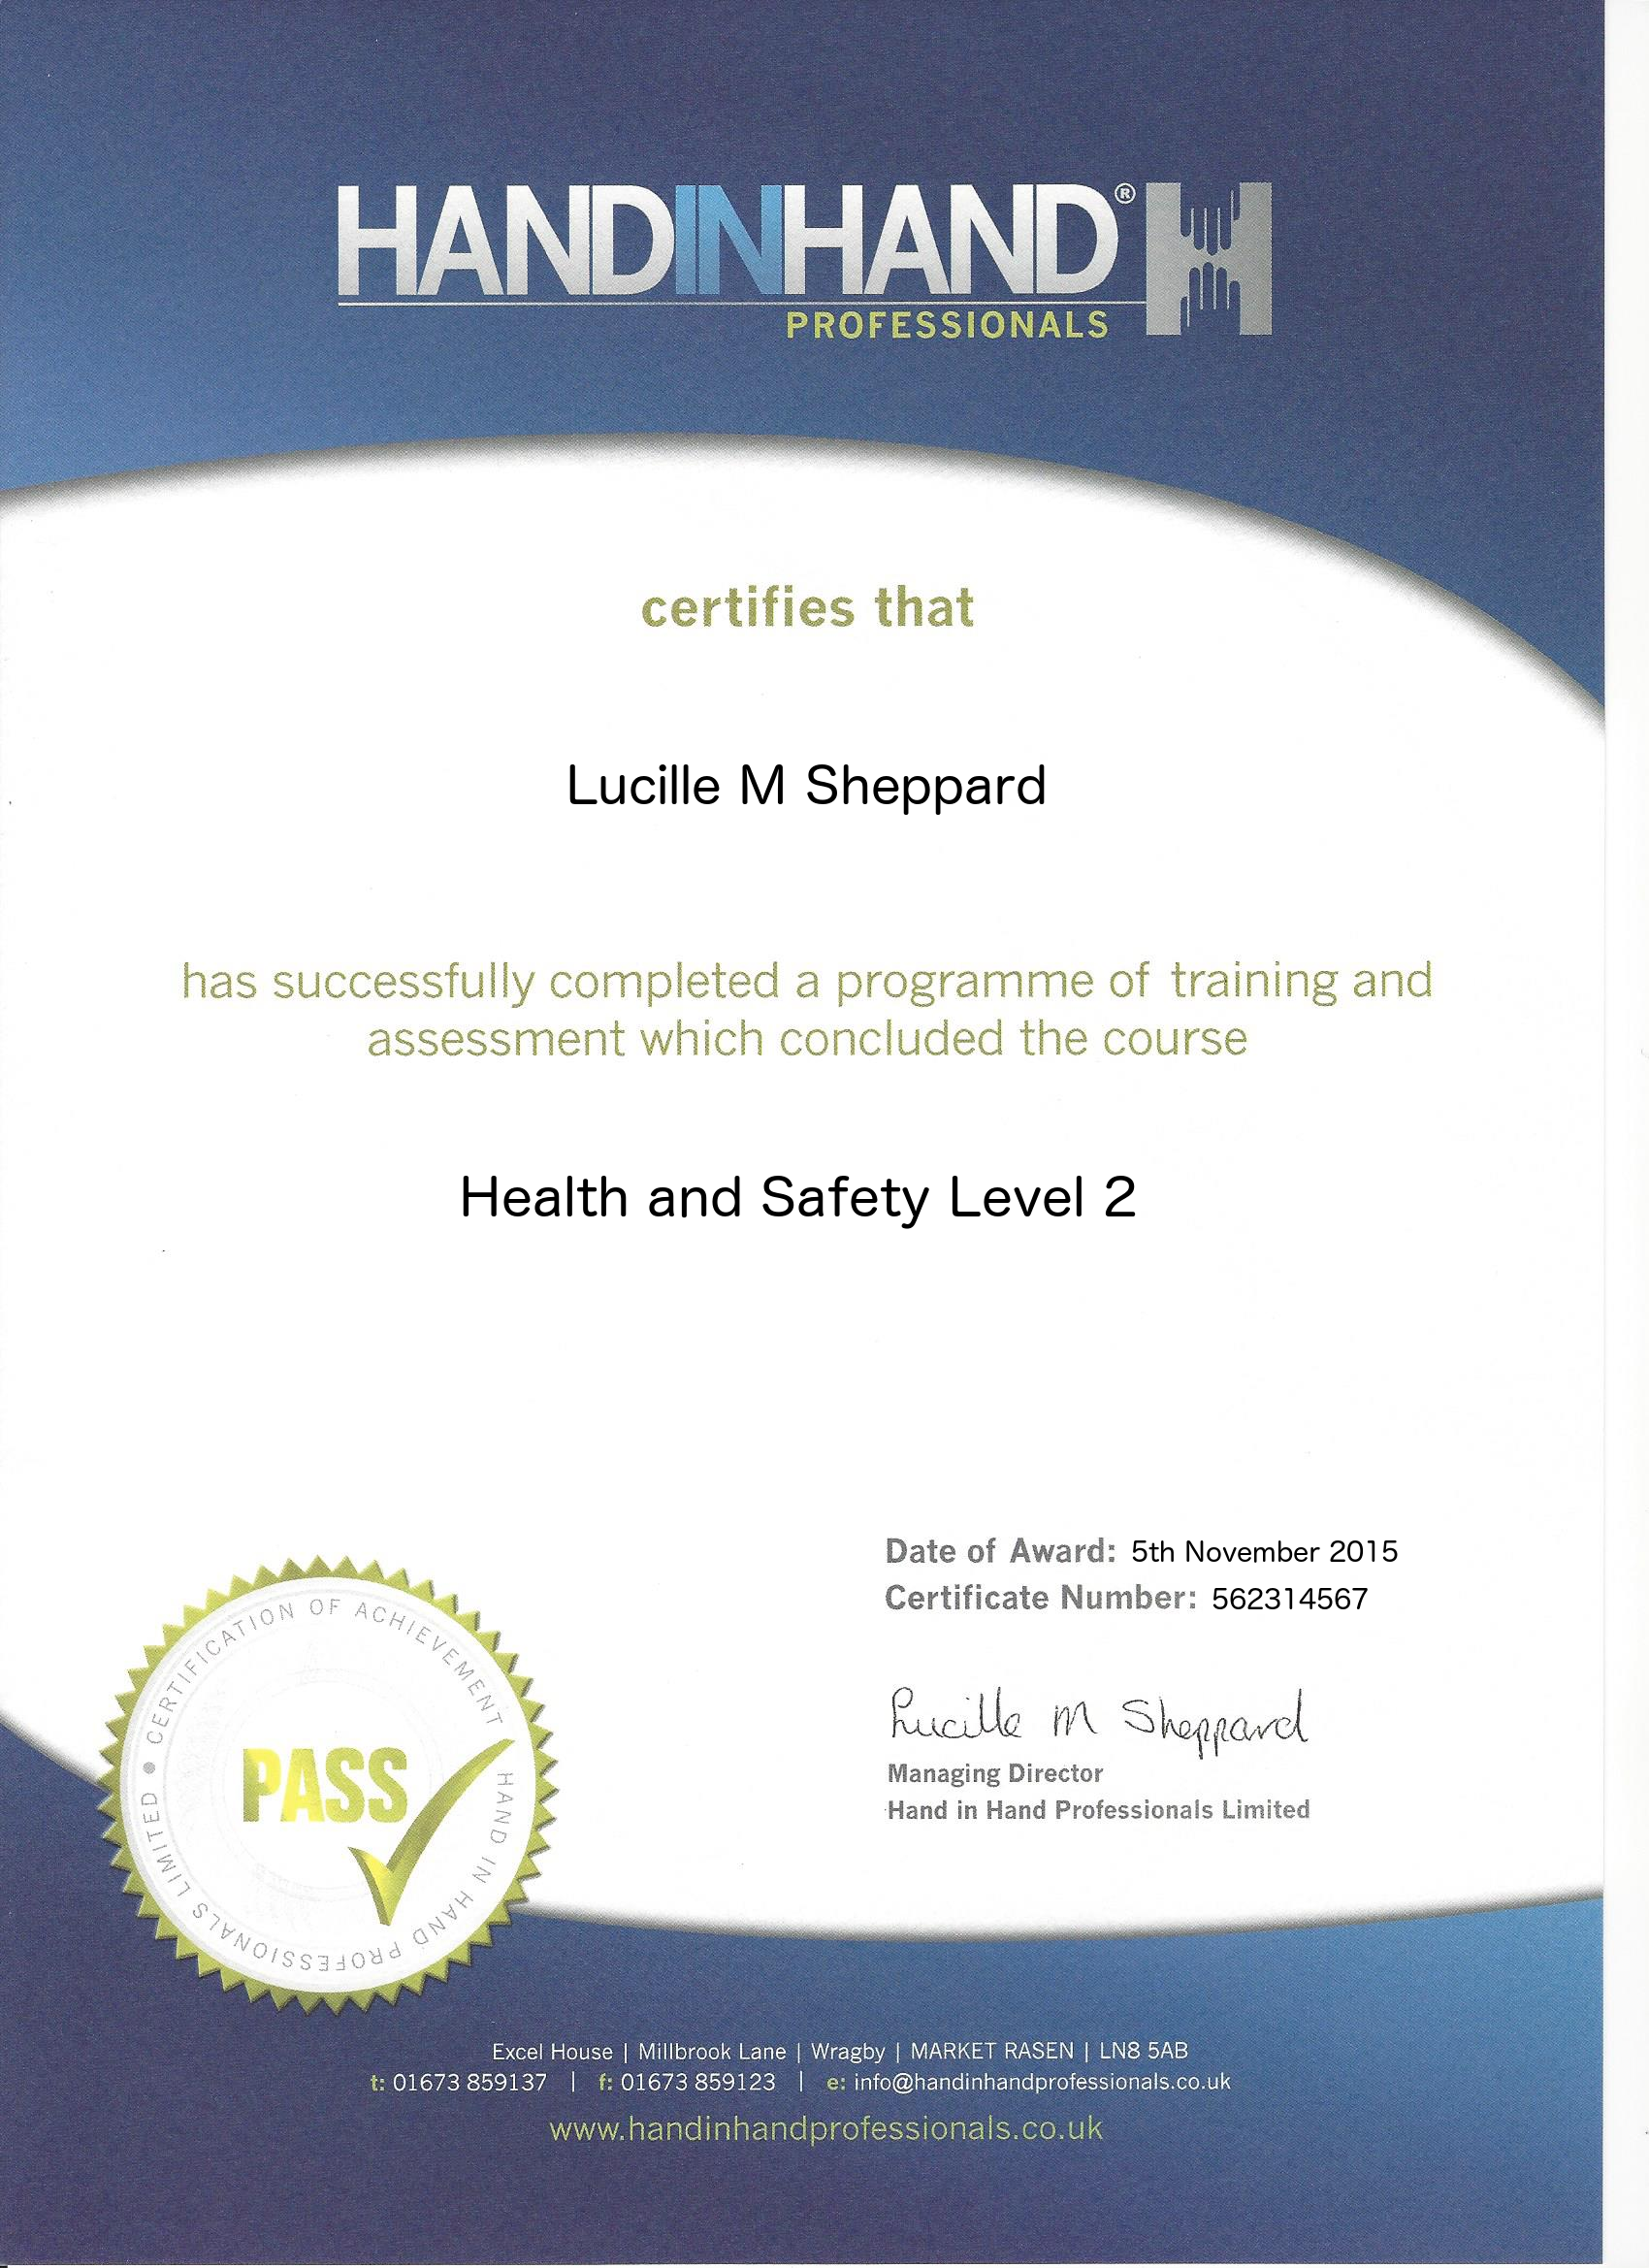 health and safety level 2 course certificate